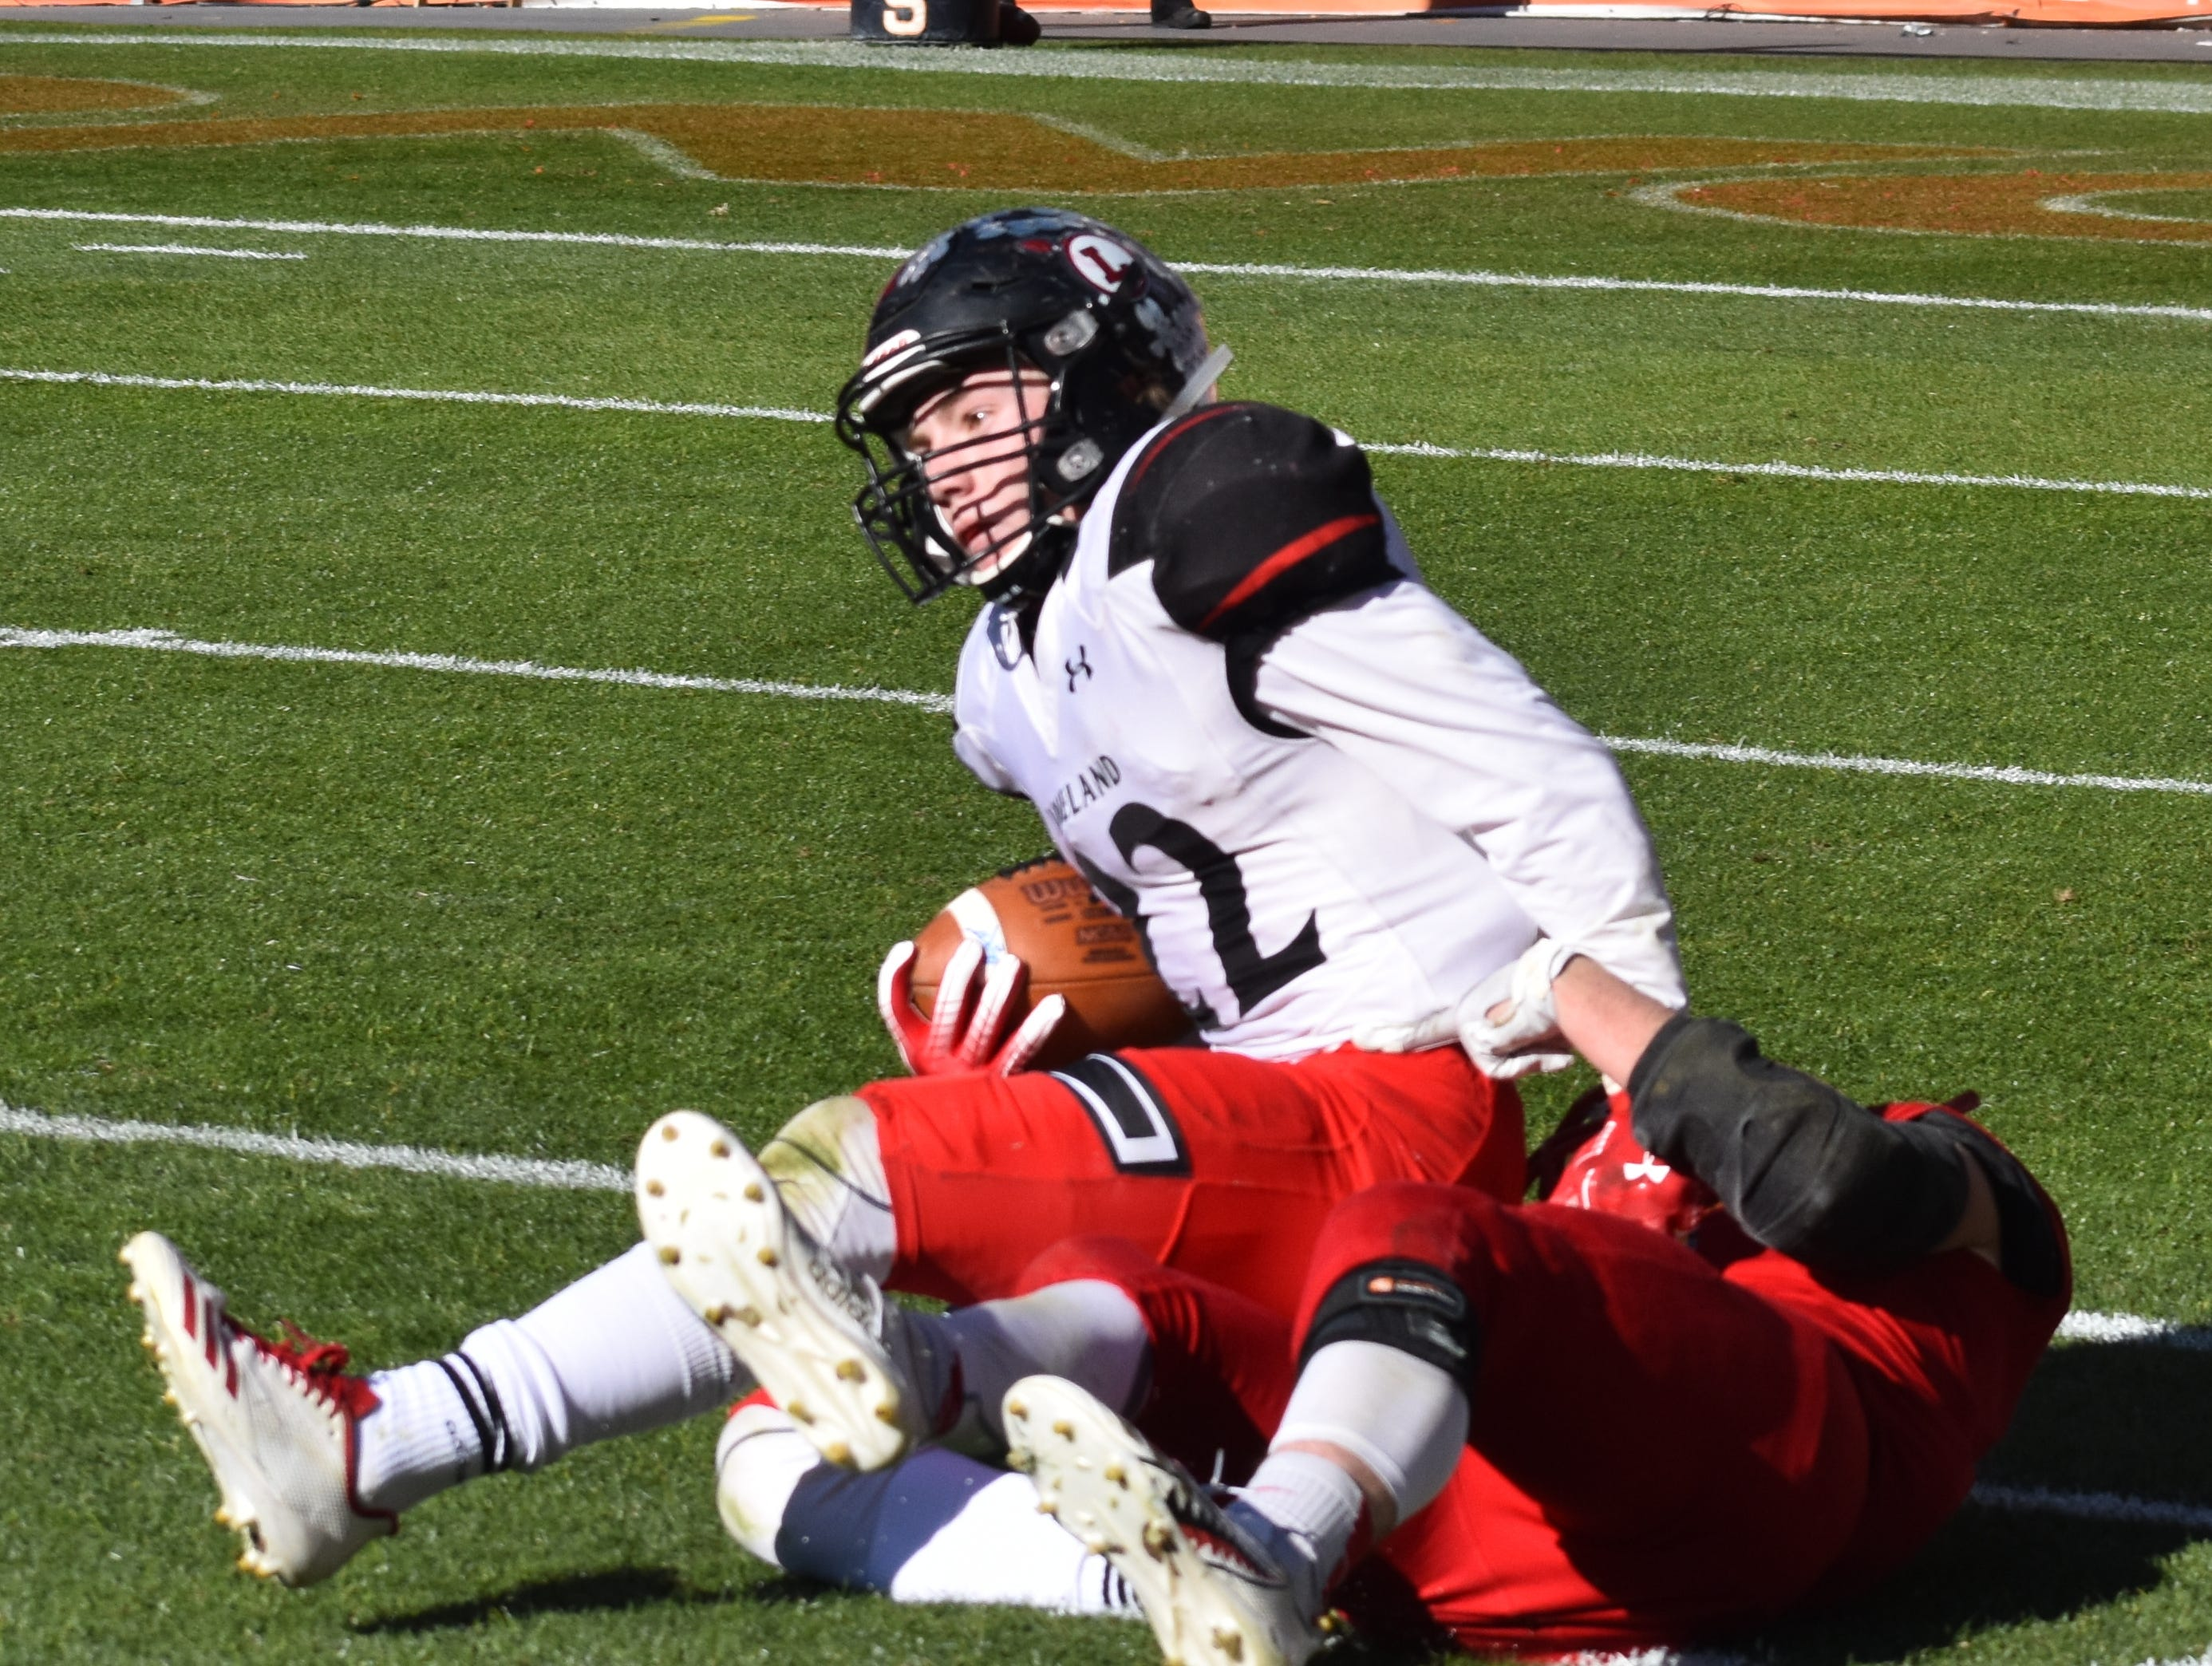 Loveland's Mason Adams is hauled down by a Skyline defender after making a catch for a 37-yard gain Saturday during the Class 4A state championship game in Denver.